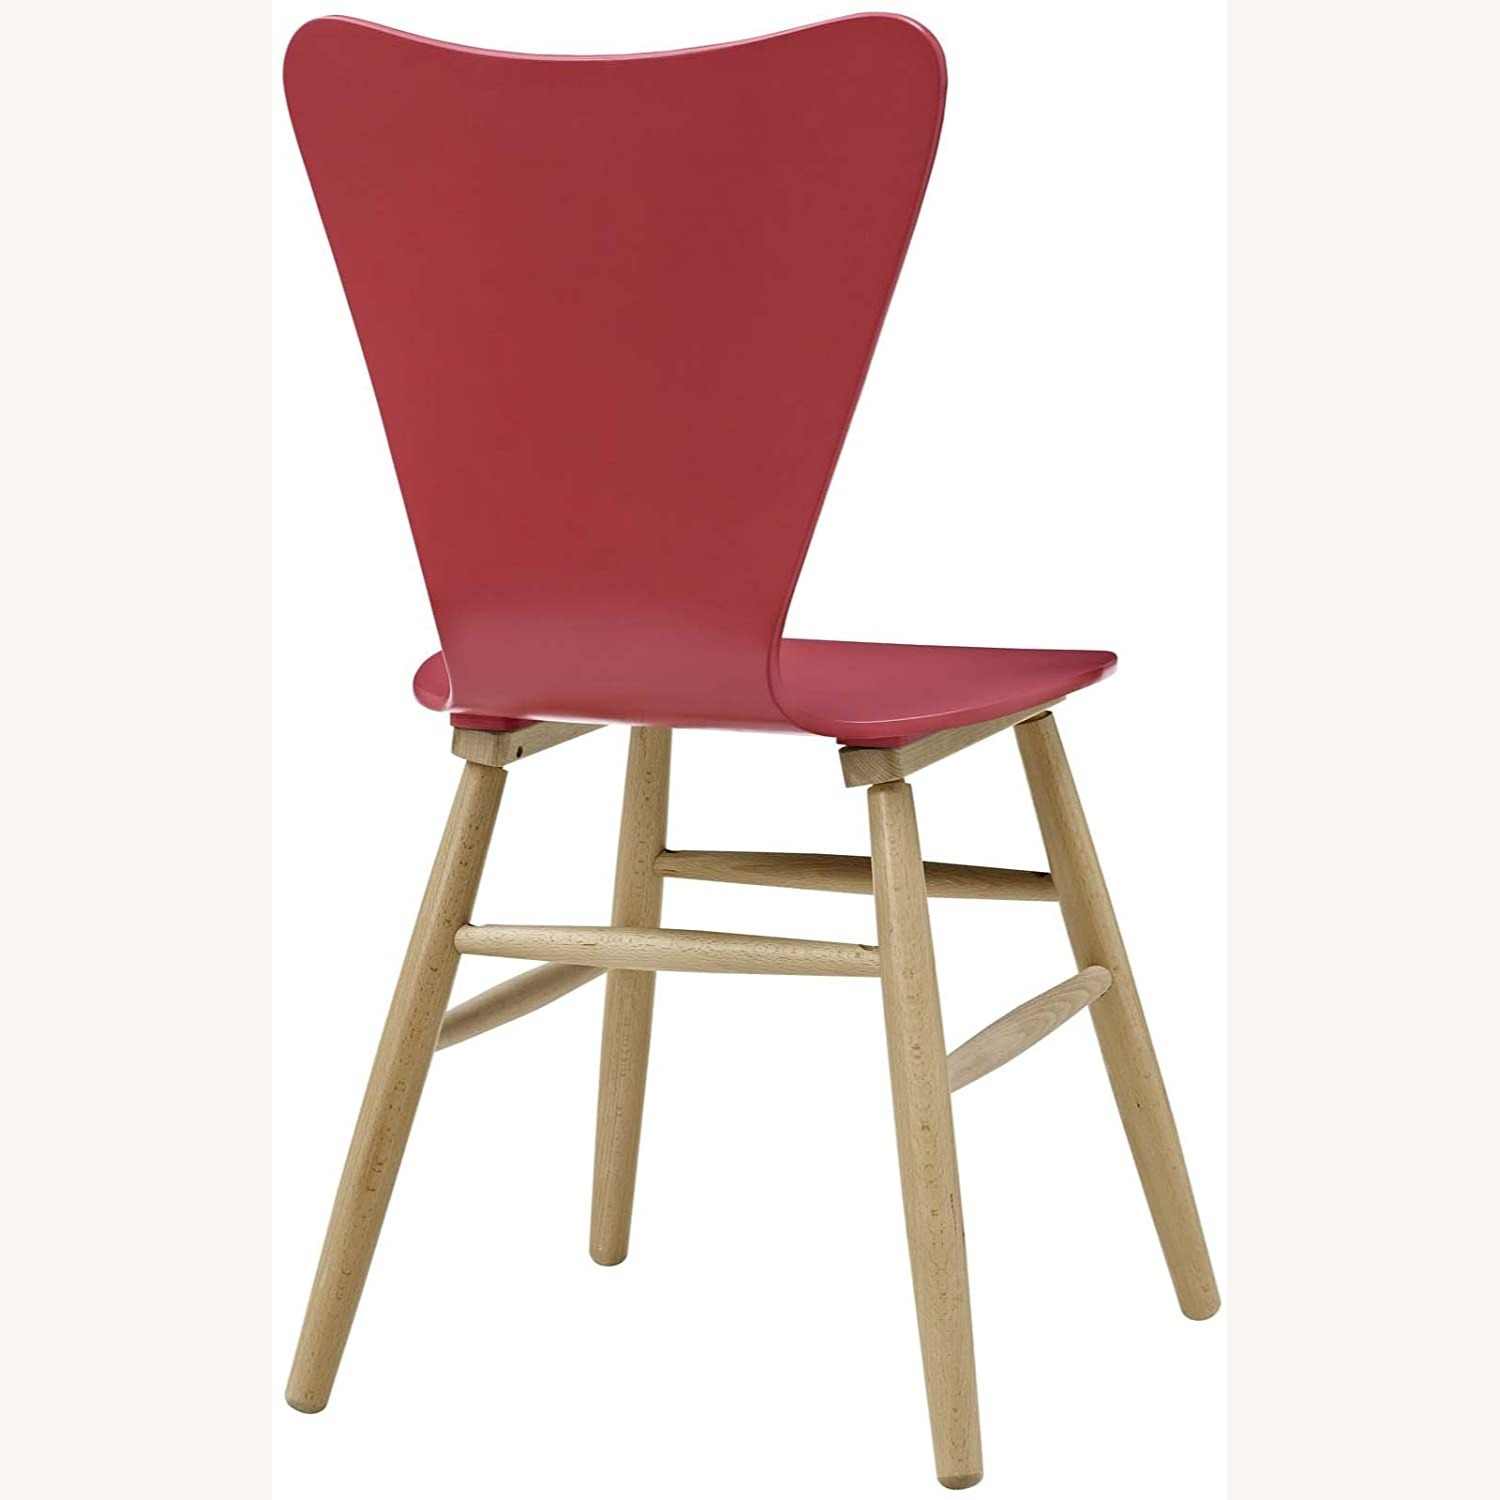 Mid-Century Style Dining Chair In Red Finish - image-2